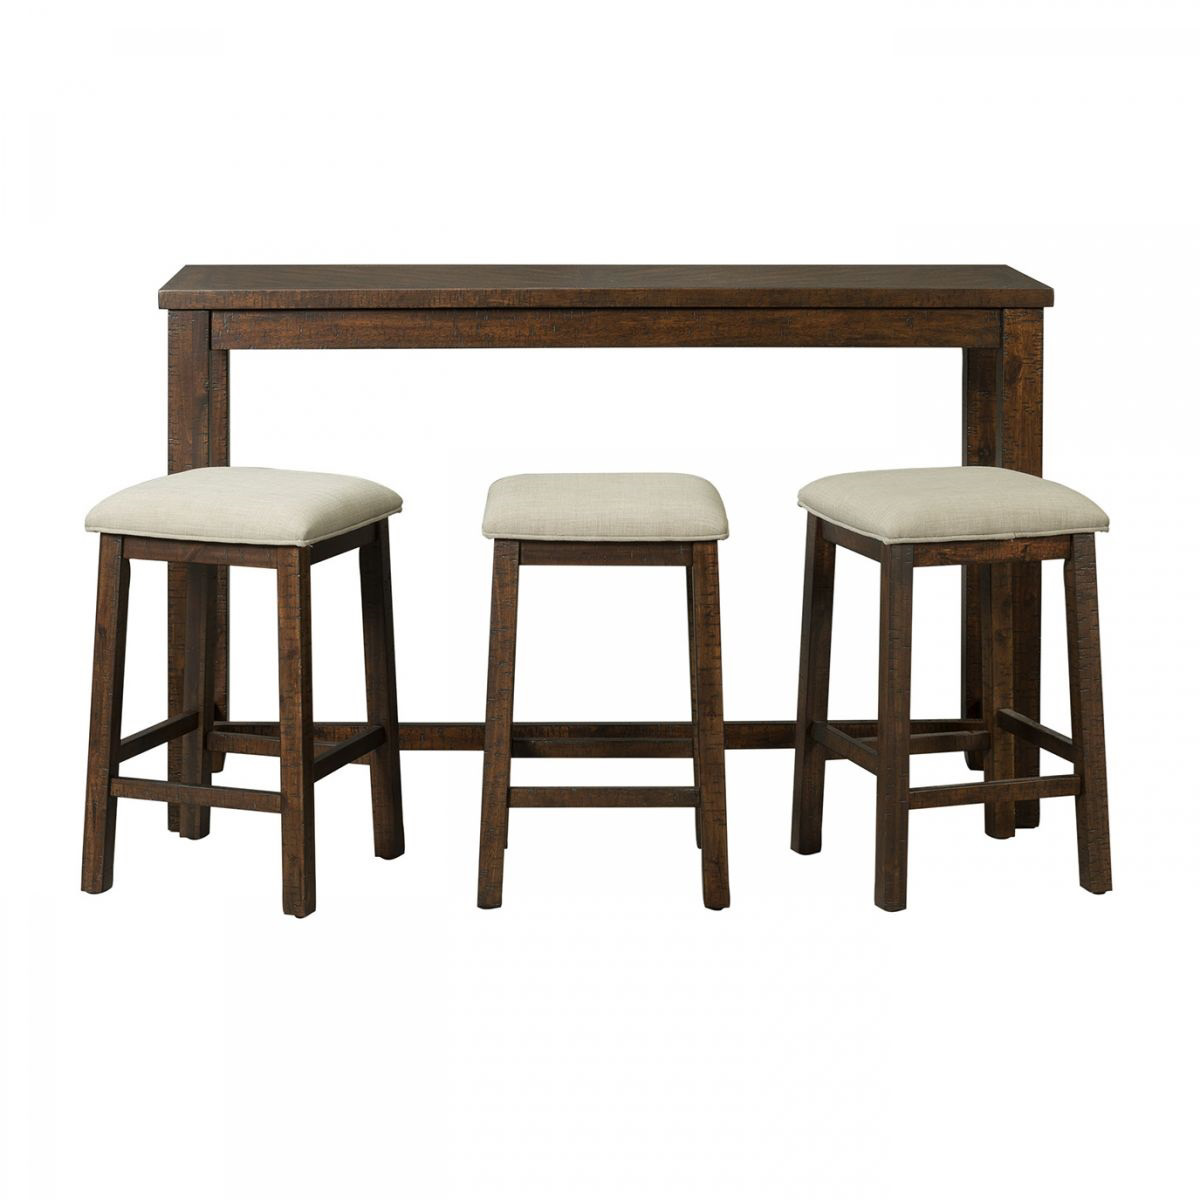 Table And Bar Stools Jax Brown Bar Table With 3 Stools